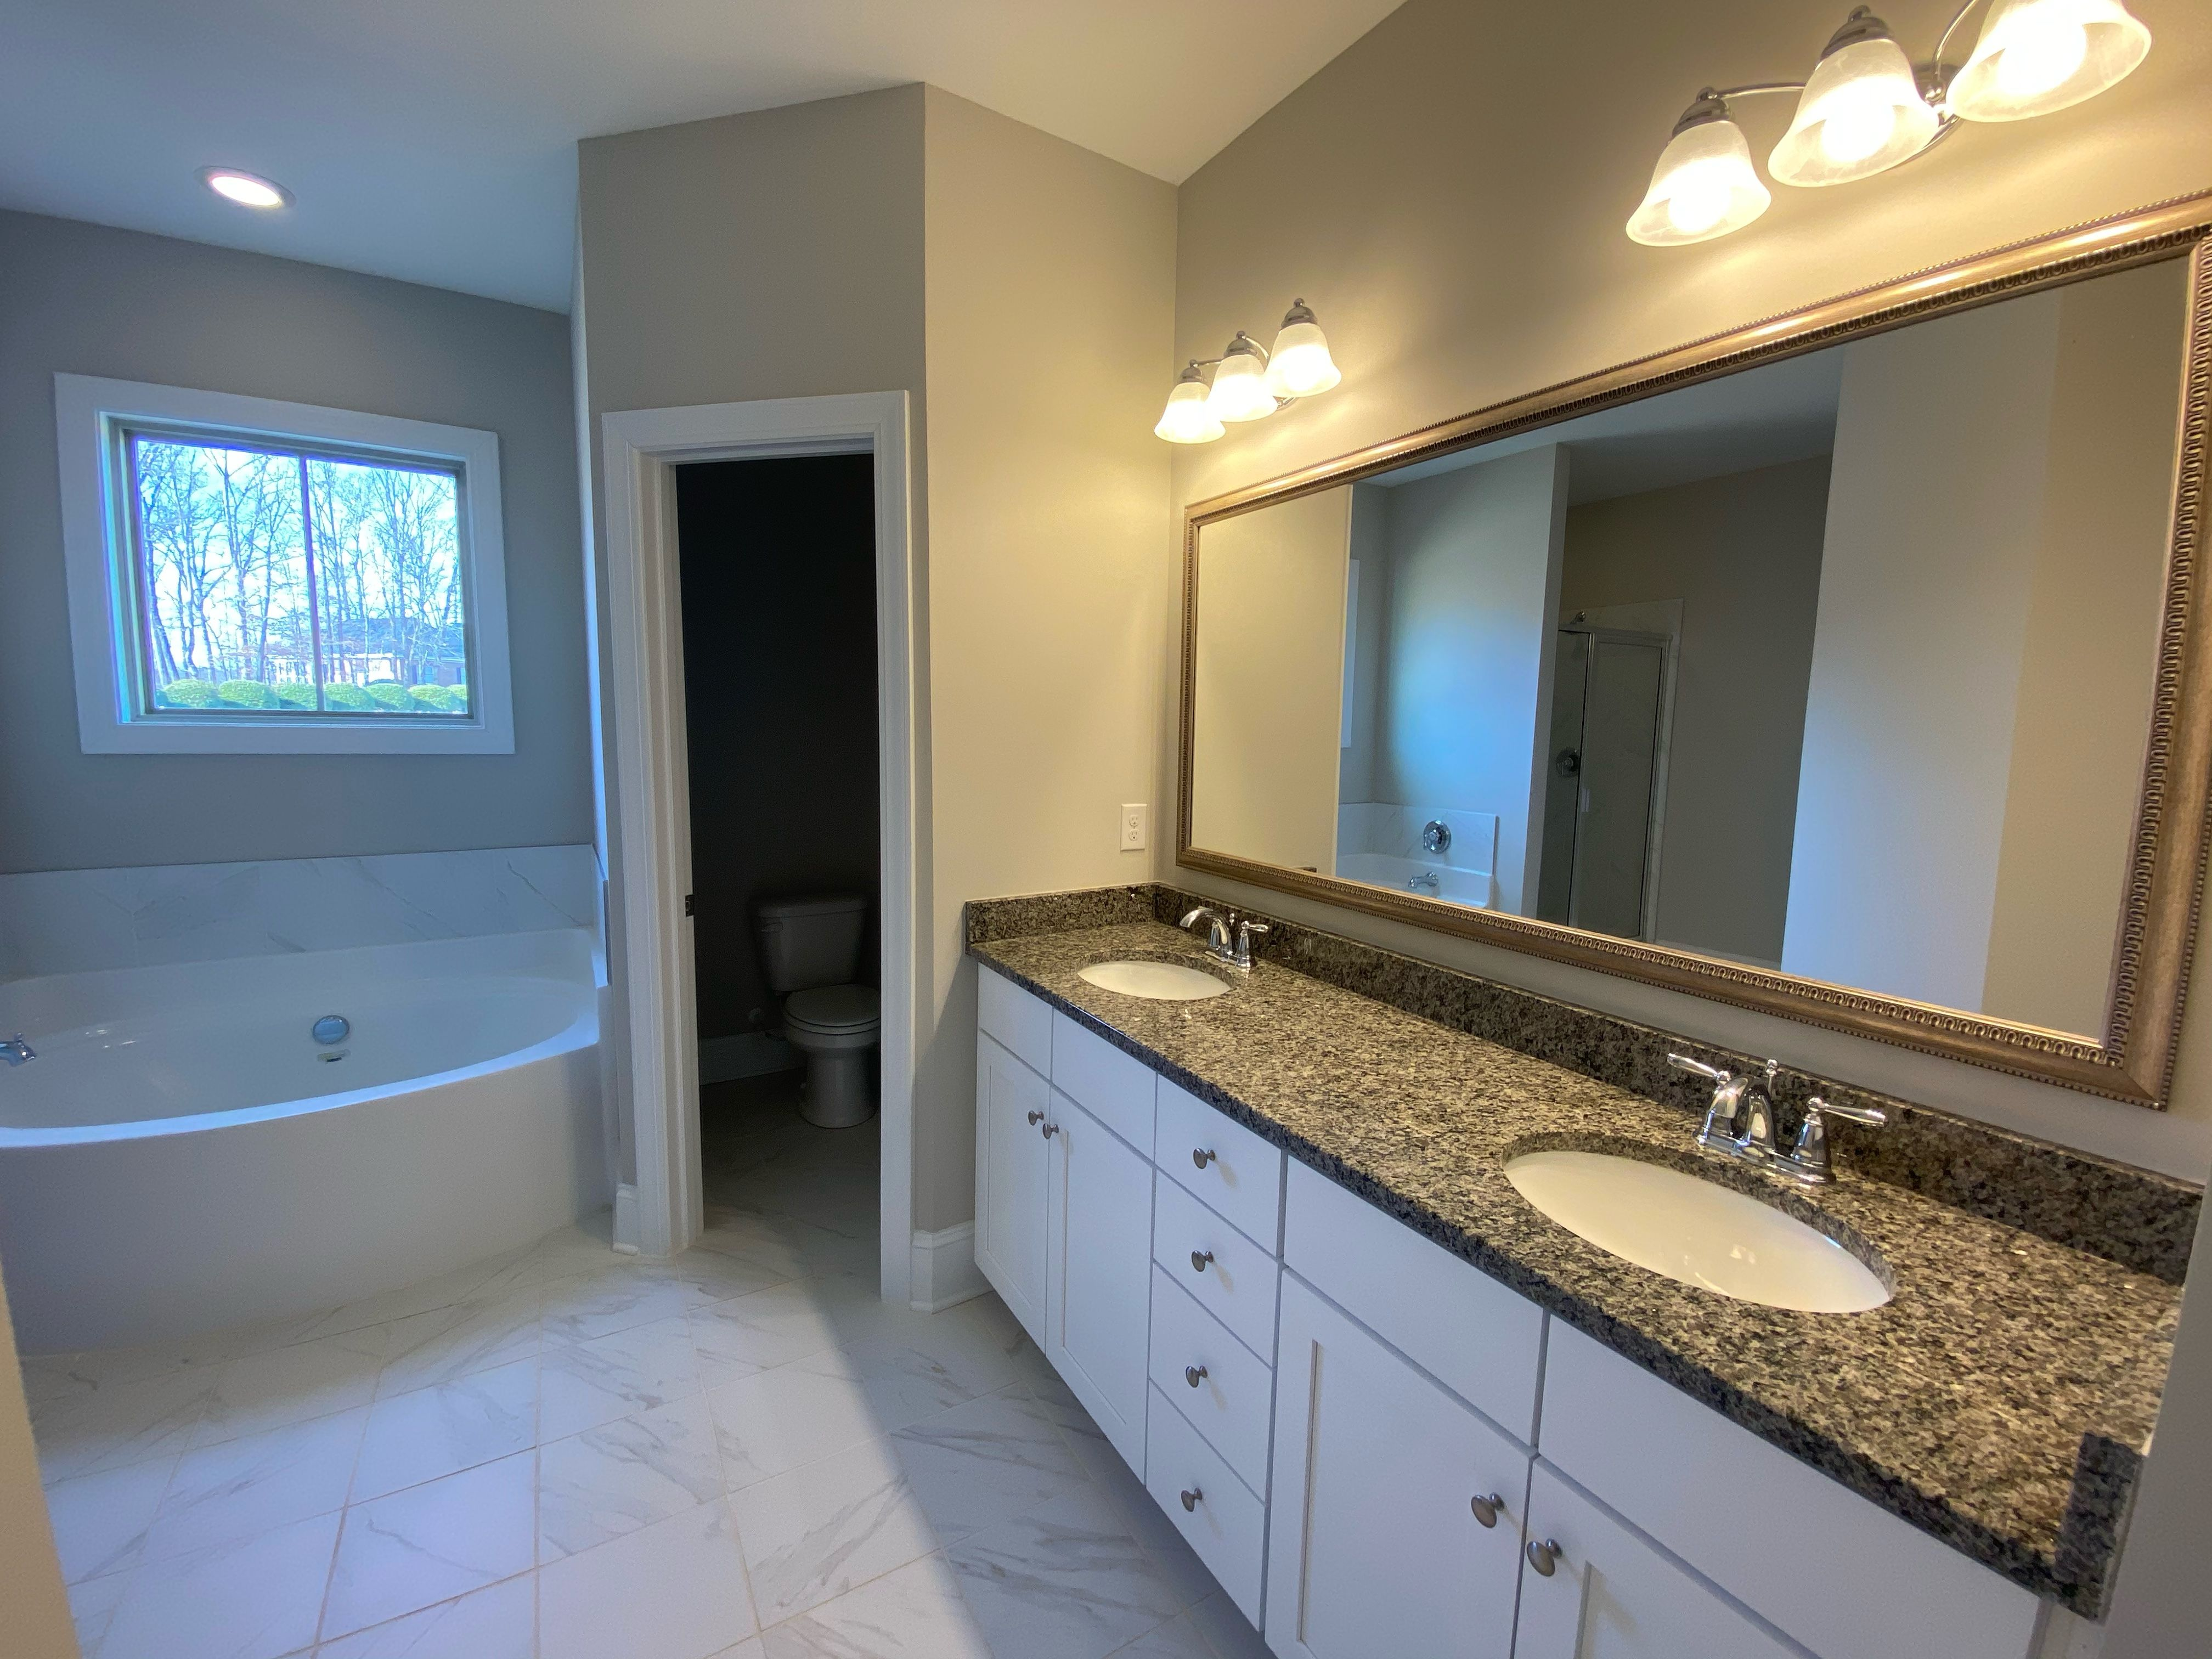 Bathroom featured in the Edisto II C6 By Great Southern Homes in Greenville-Spartanburg, SC